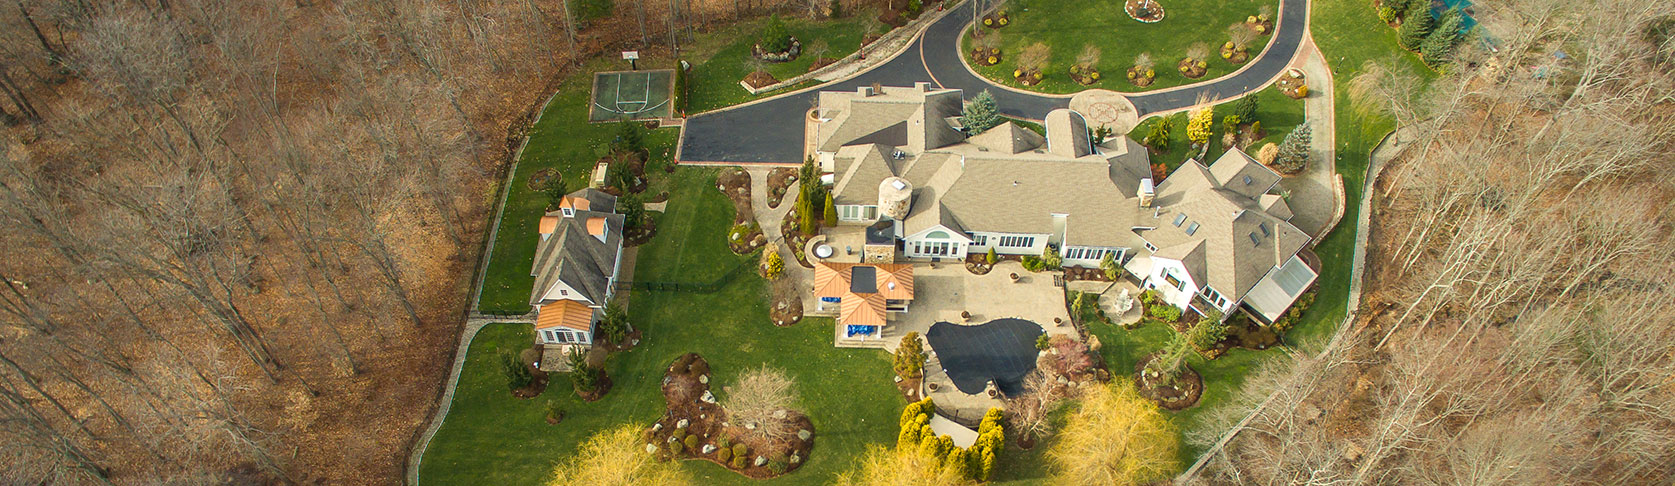 133 Wildrose Rd, Orange, CT